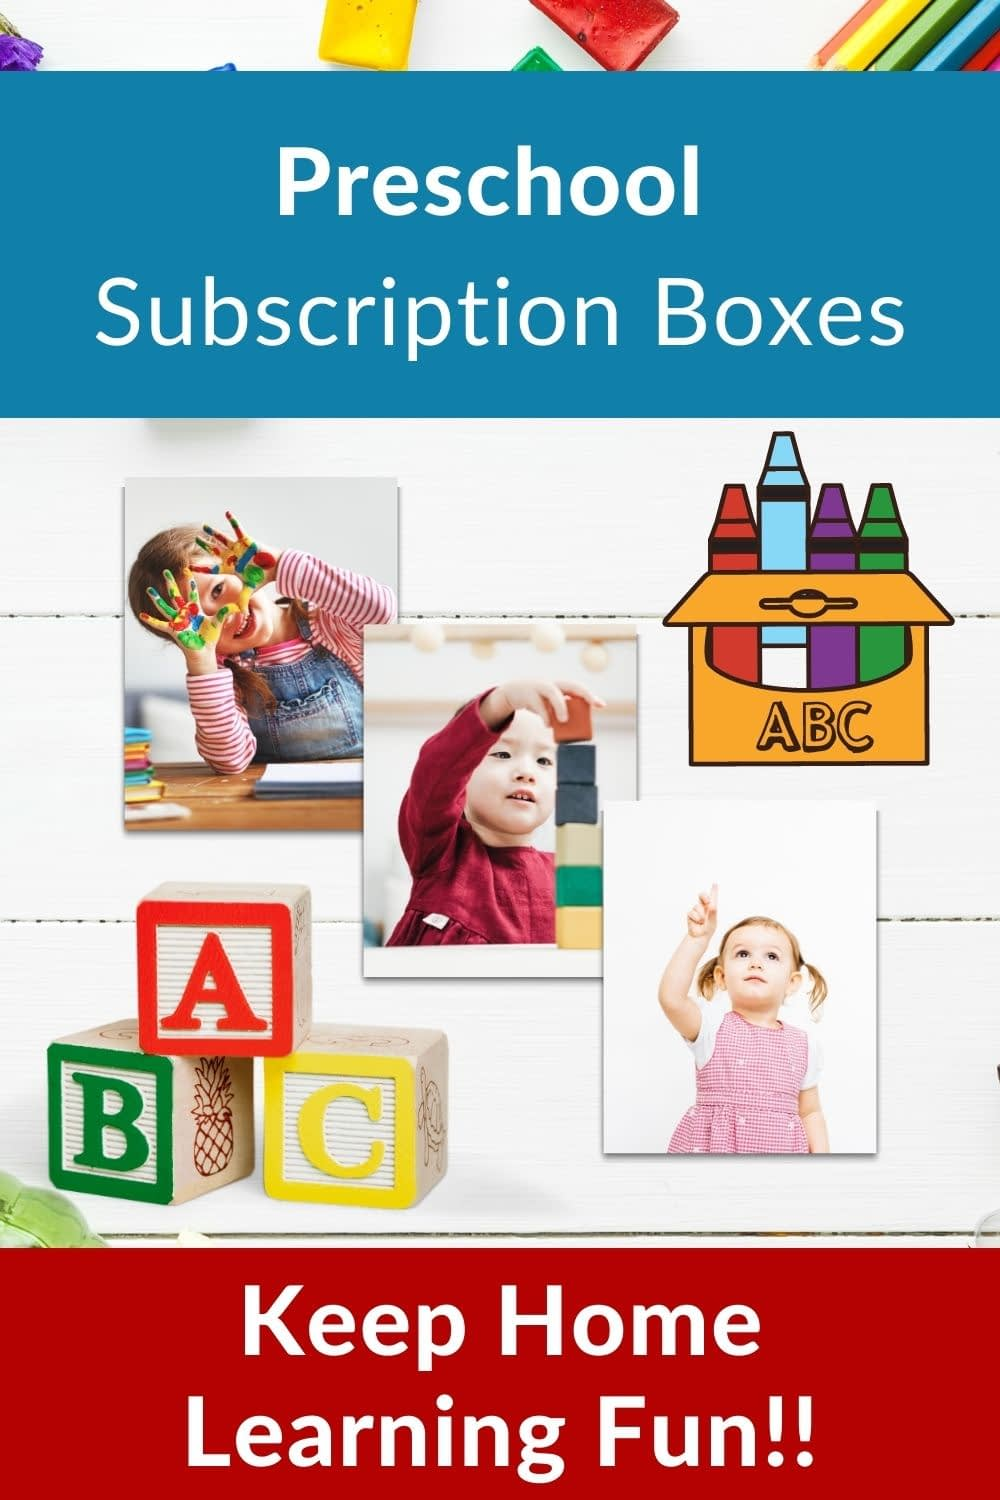 It's that time again! Get the kids learning with the best preschool subscription boxes. These activity boxes for preschoolers can help keep kids sharp and growing at home.